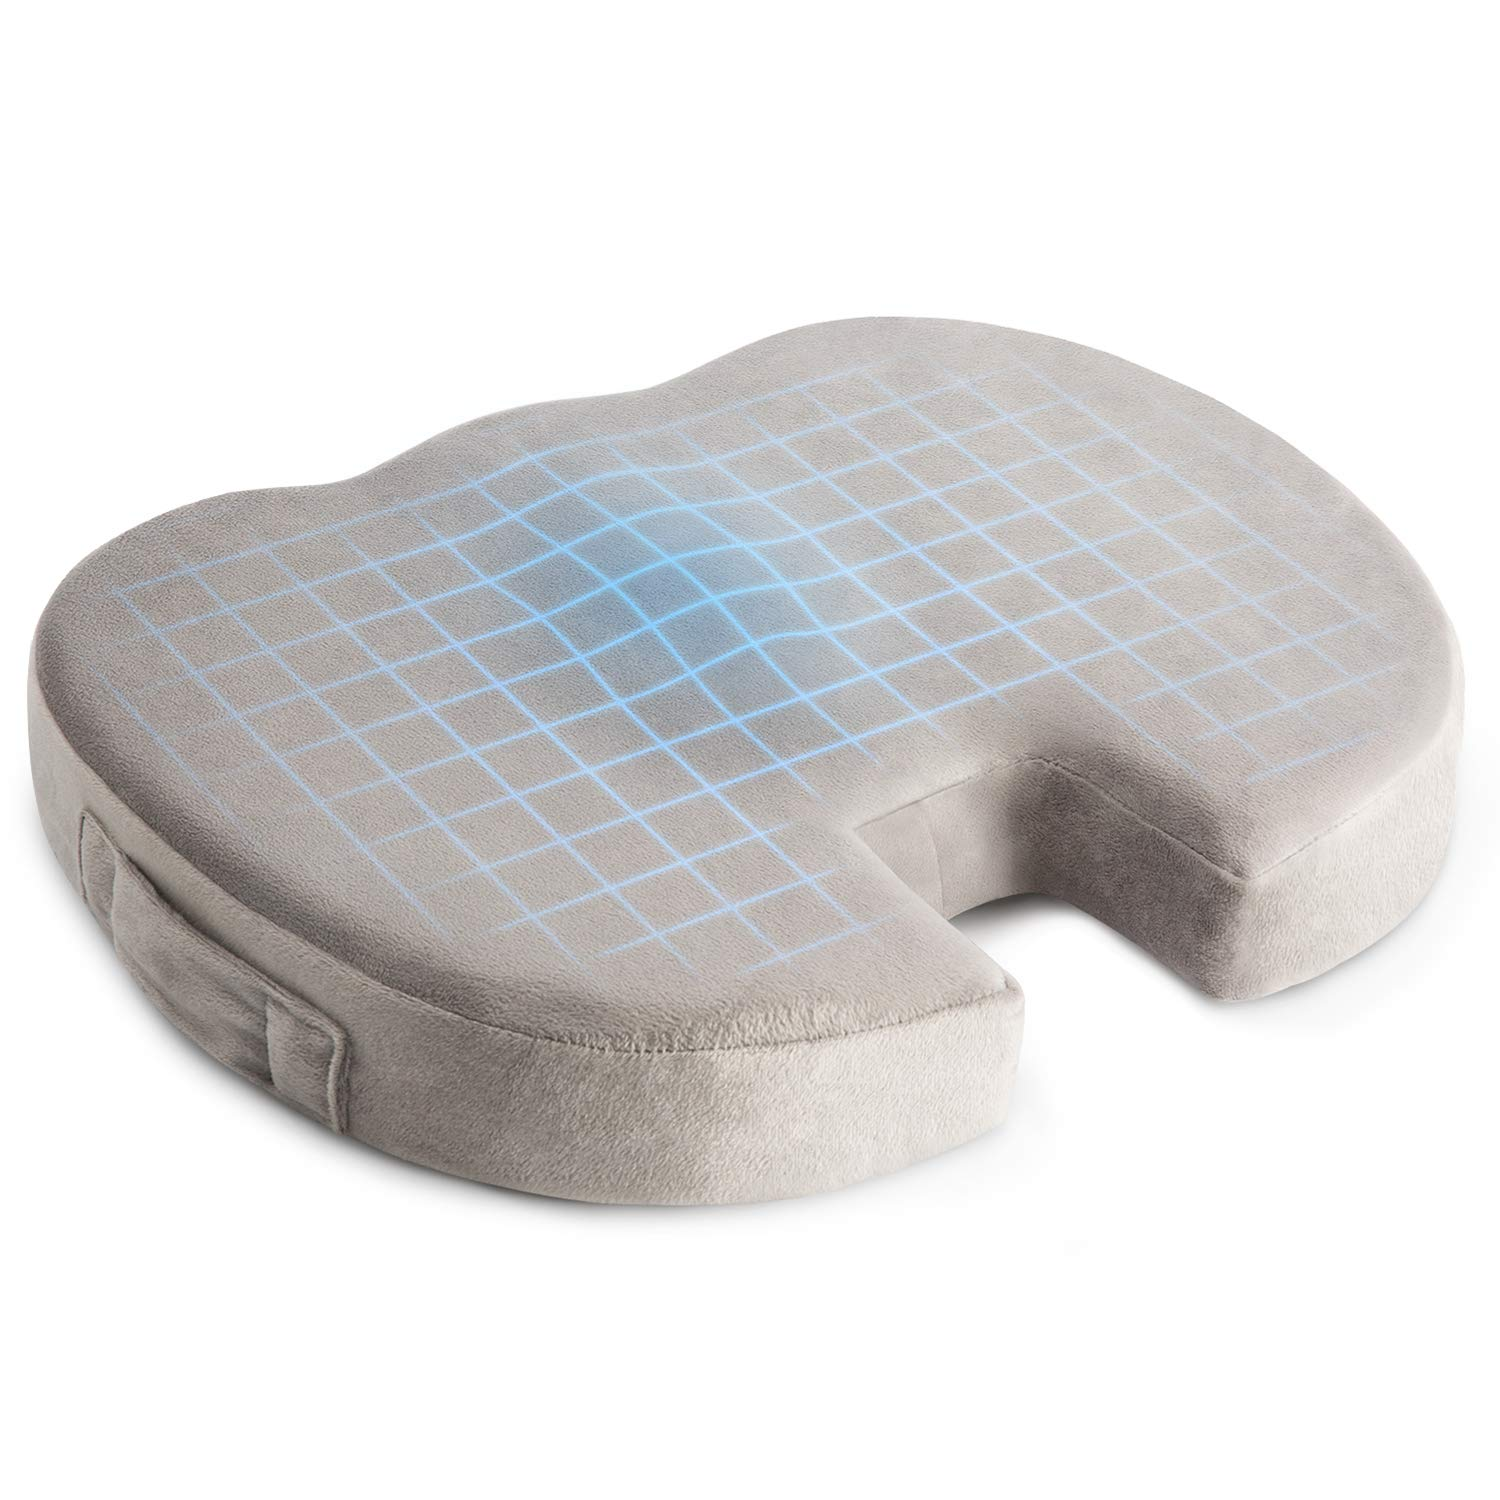 Windsleeping Natural Latex Seat Cushion Non-Slip Orthopedic Latex Coccyx Cushion for Tailbone Pain Office Chair Car Seat Cushion for Sciatica & Back Pain Relief,Grey